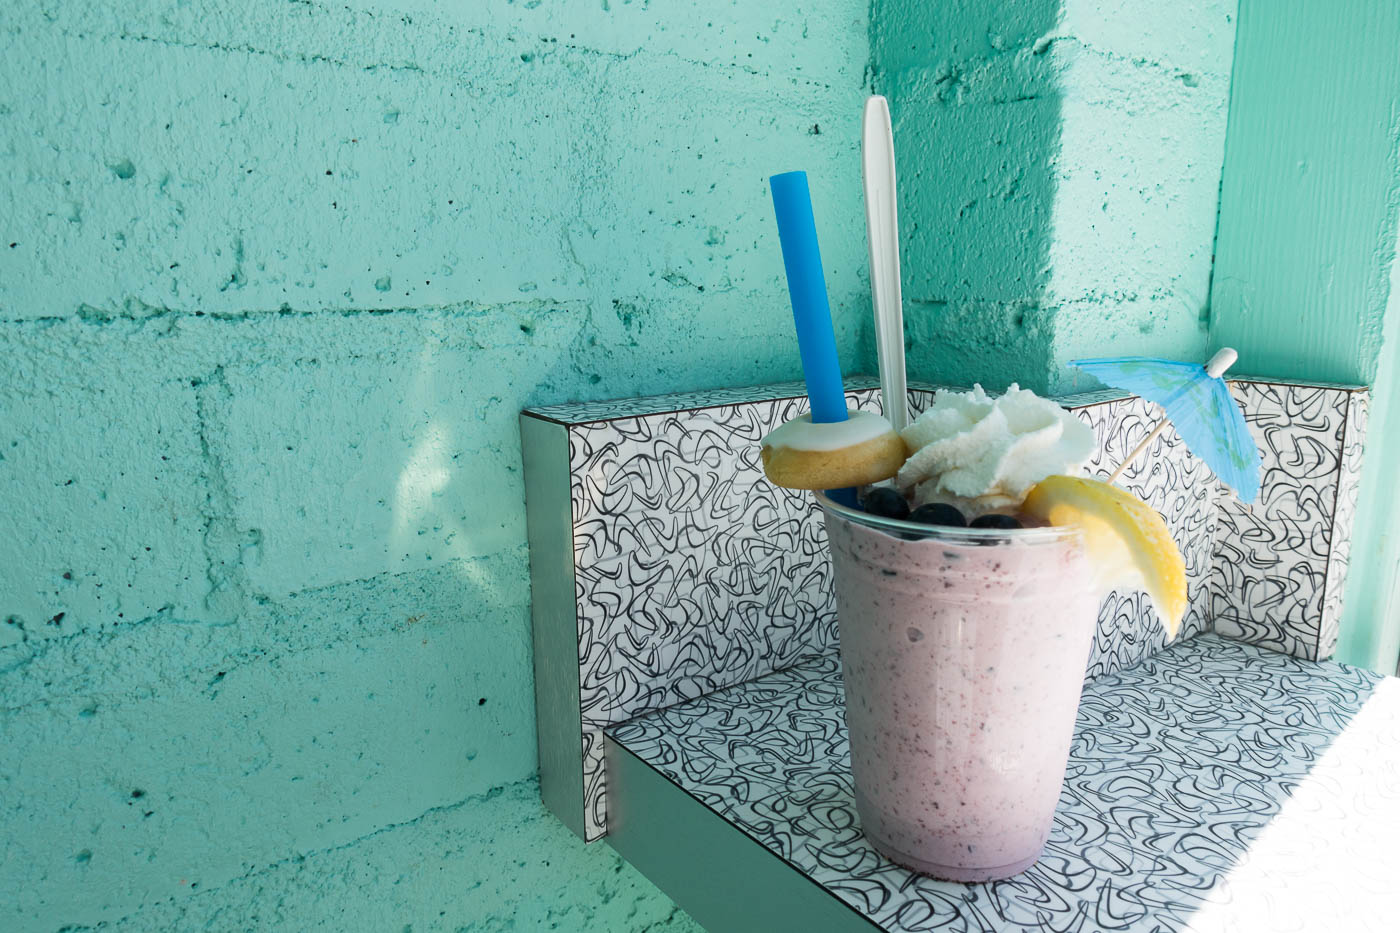 Blueberry hill shake with mini donut at Great Shakes, Palm Springs | The Chic Diary.jpg